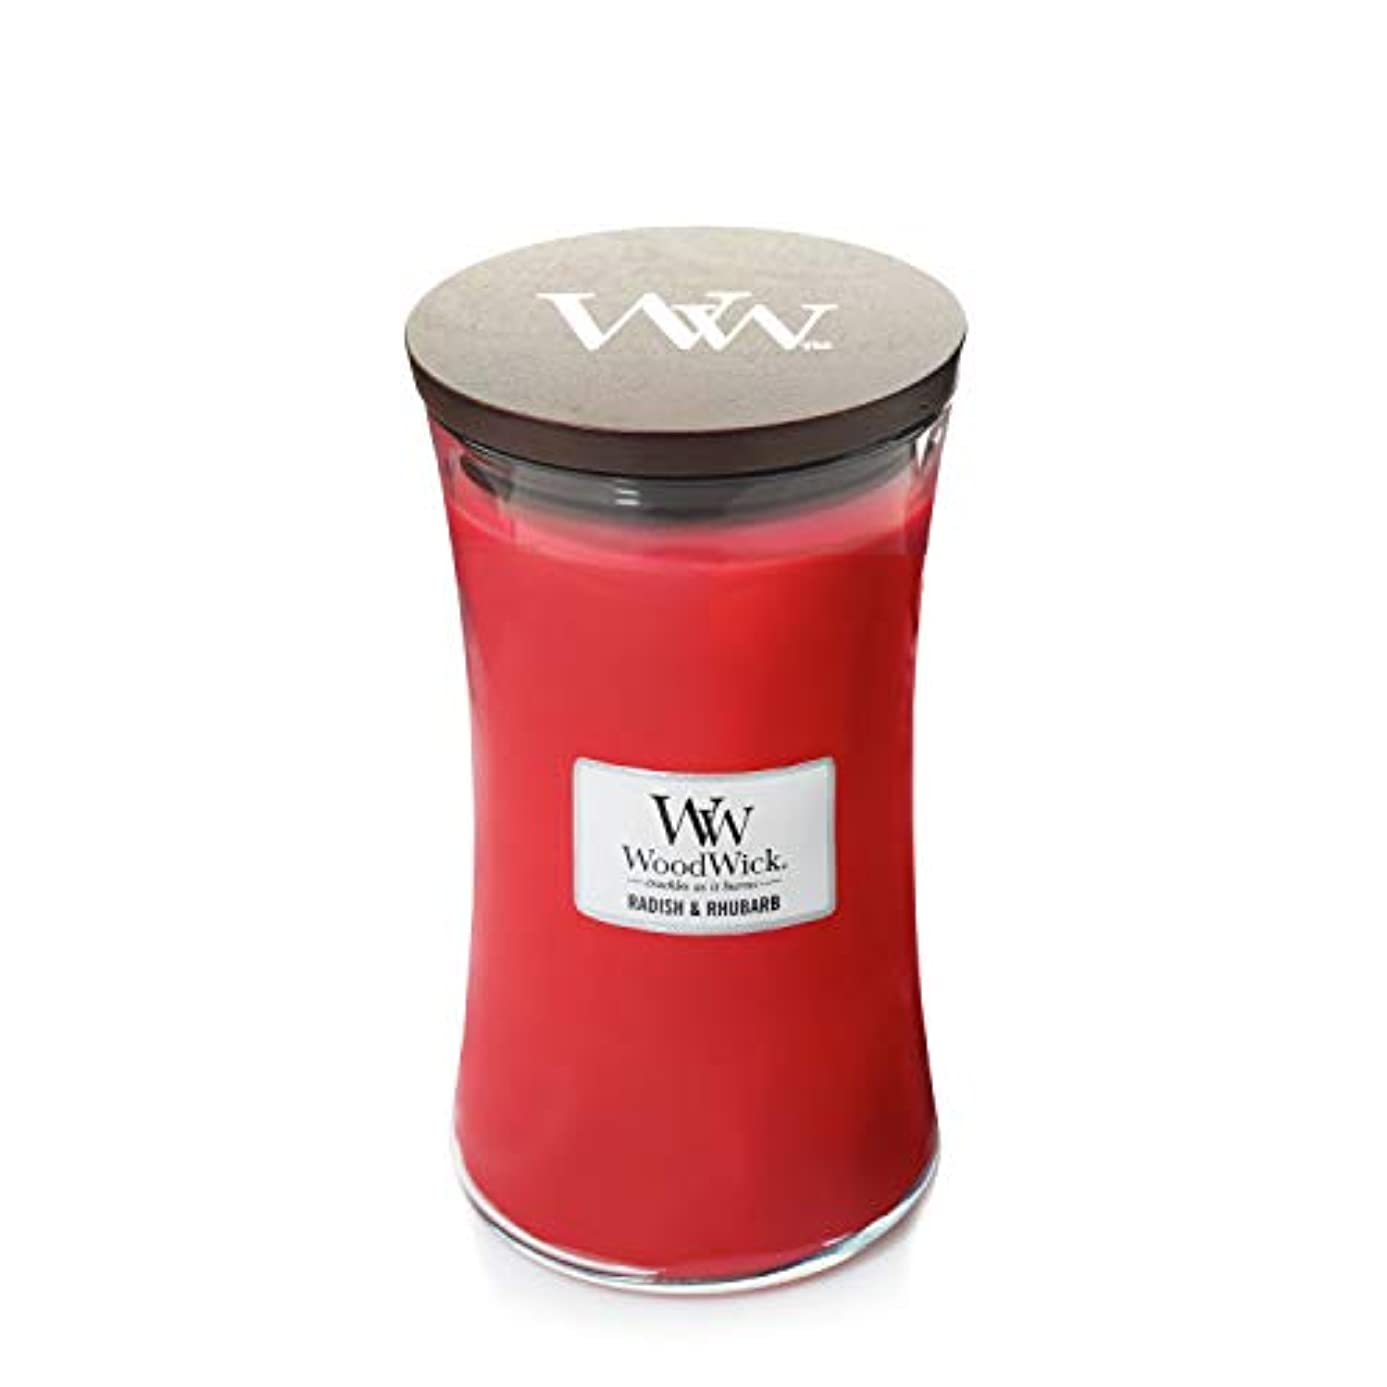 満員イノセンス内側WoodWick Radish and Rhubarb Large Jar Scented Candle